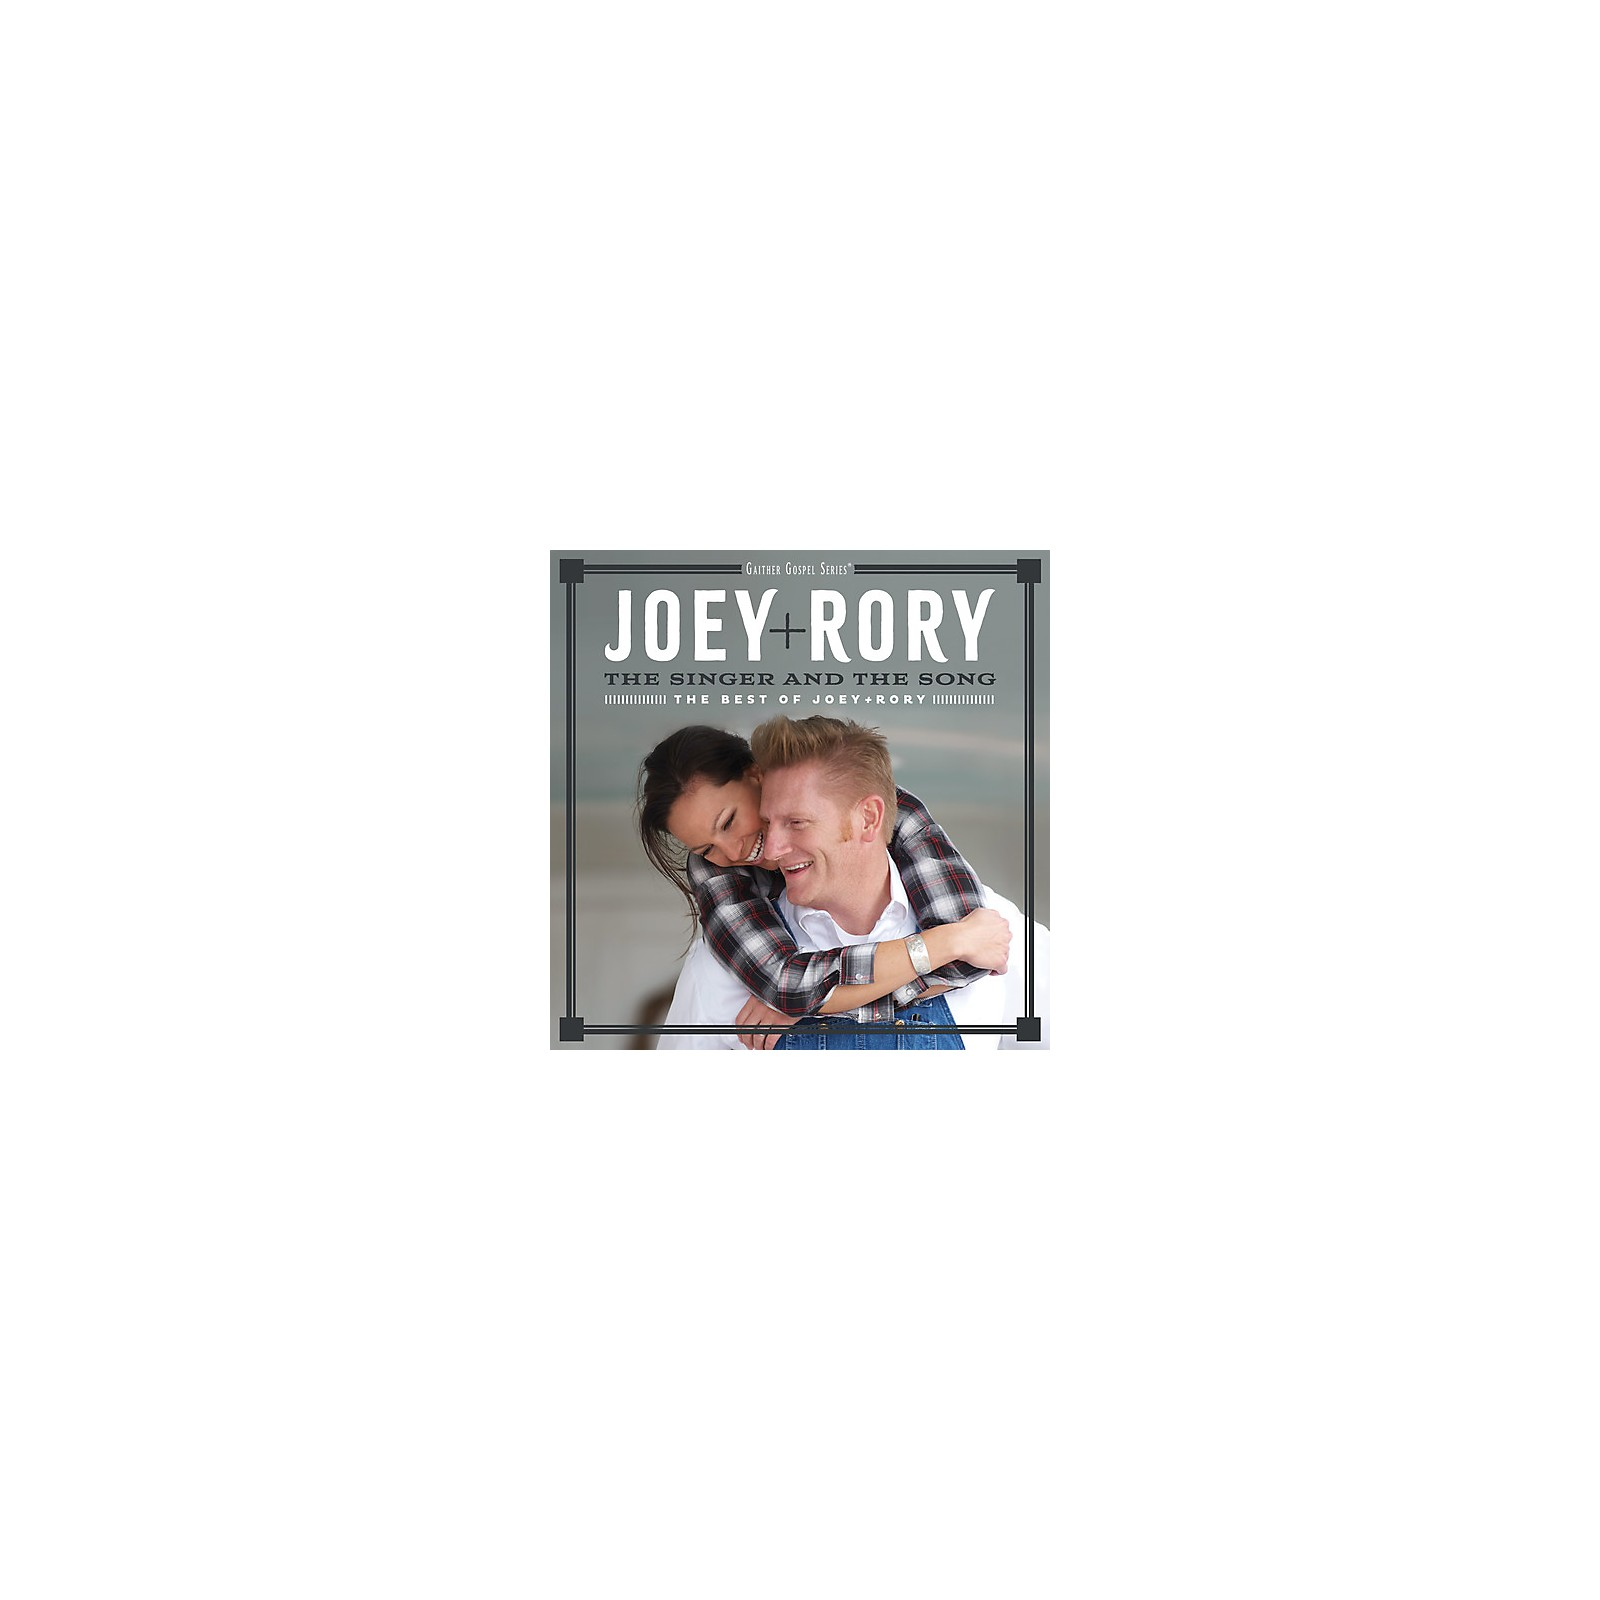 Alliance Joey & Rory - The Singer And The Song: The Best Of Joey + Rory (CD)